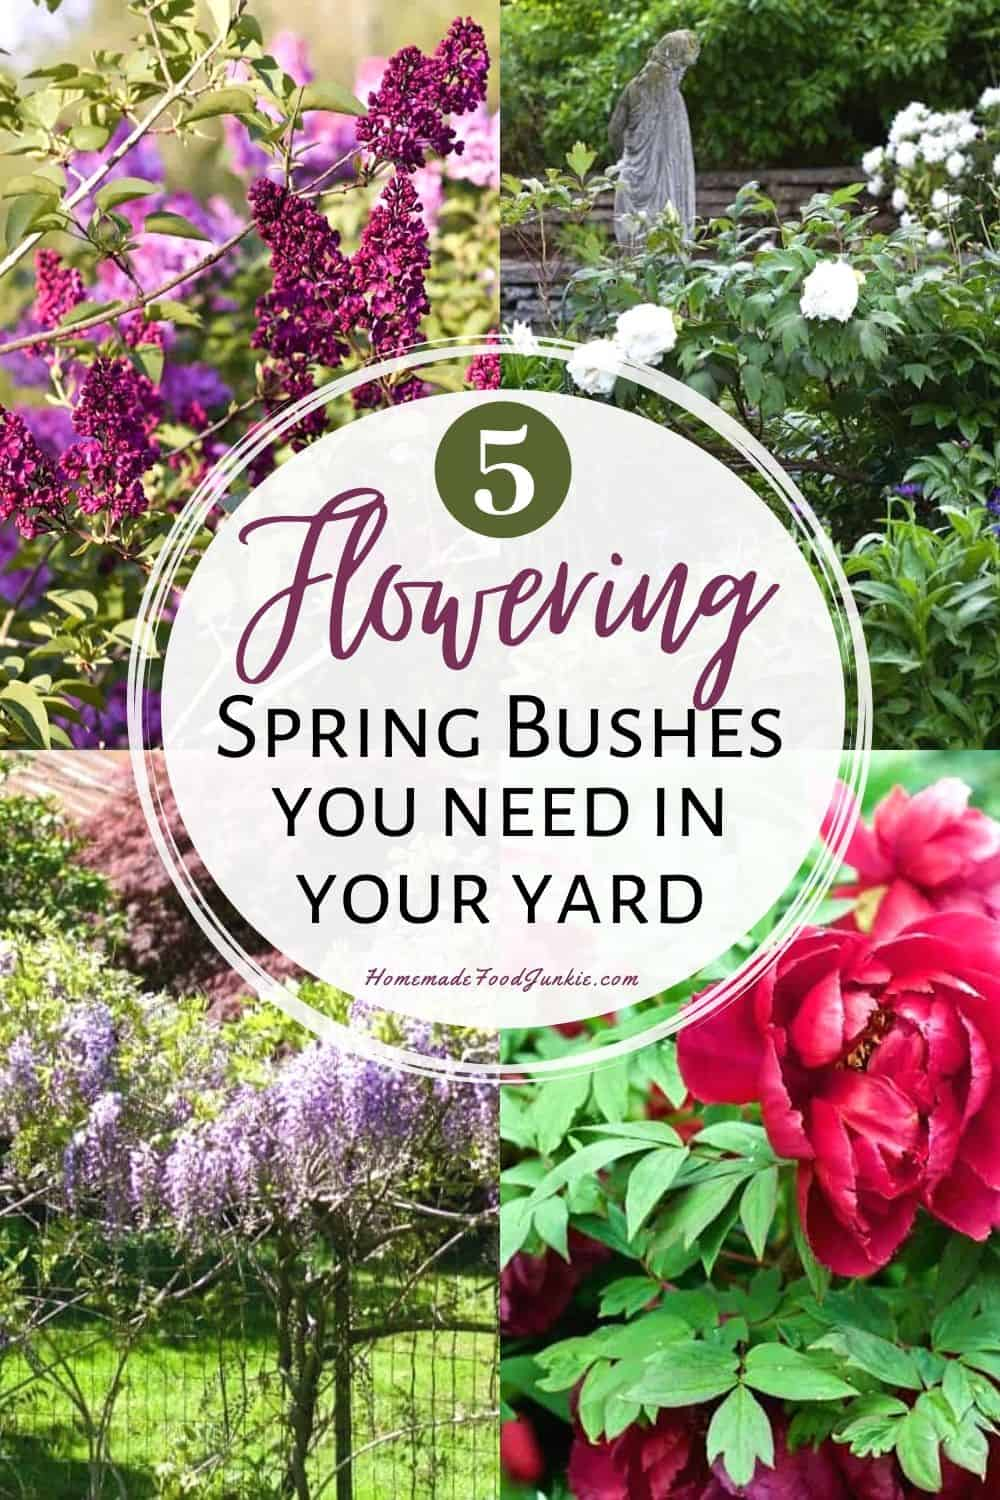 5 flowering spring bushes you need in your yard-pin image